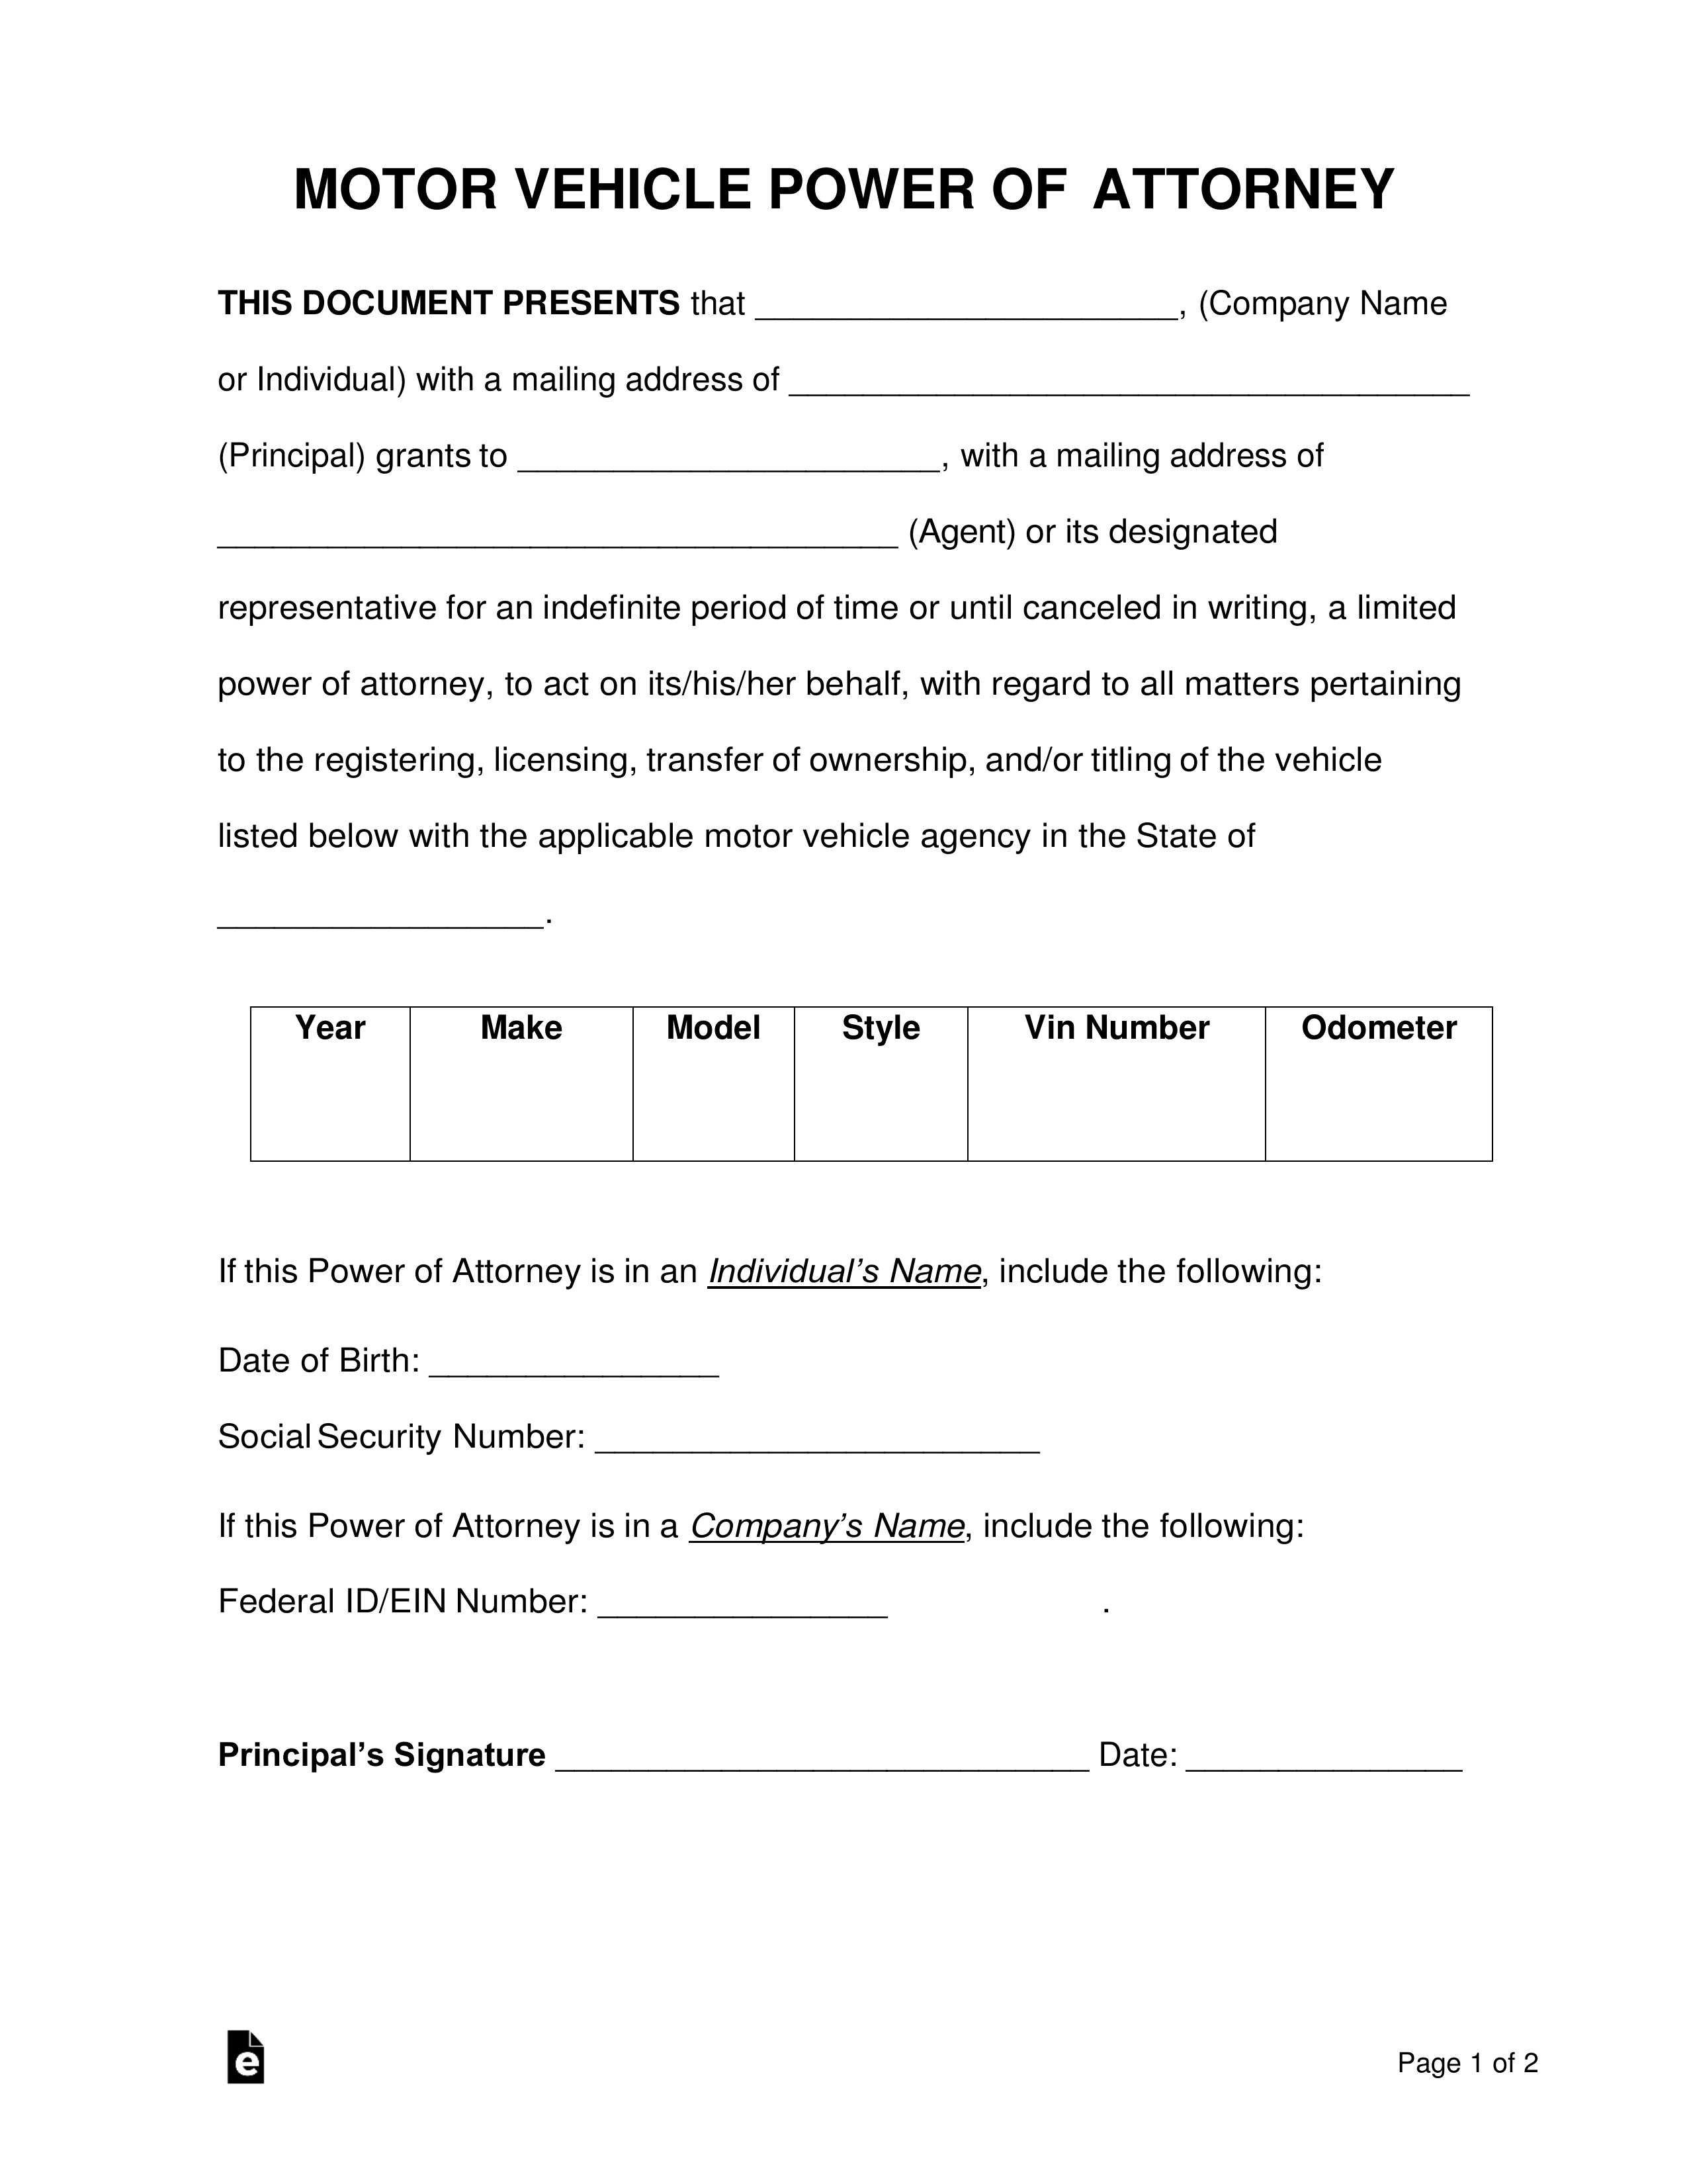 Free Motor Vehicle Power Of Attorney Forms Pdf Word Eforms Free Fillable Forms Power Of Attorney Form Power Of Attorney Attorneys